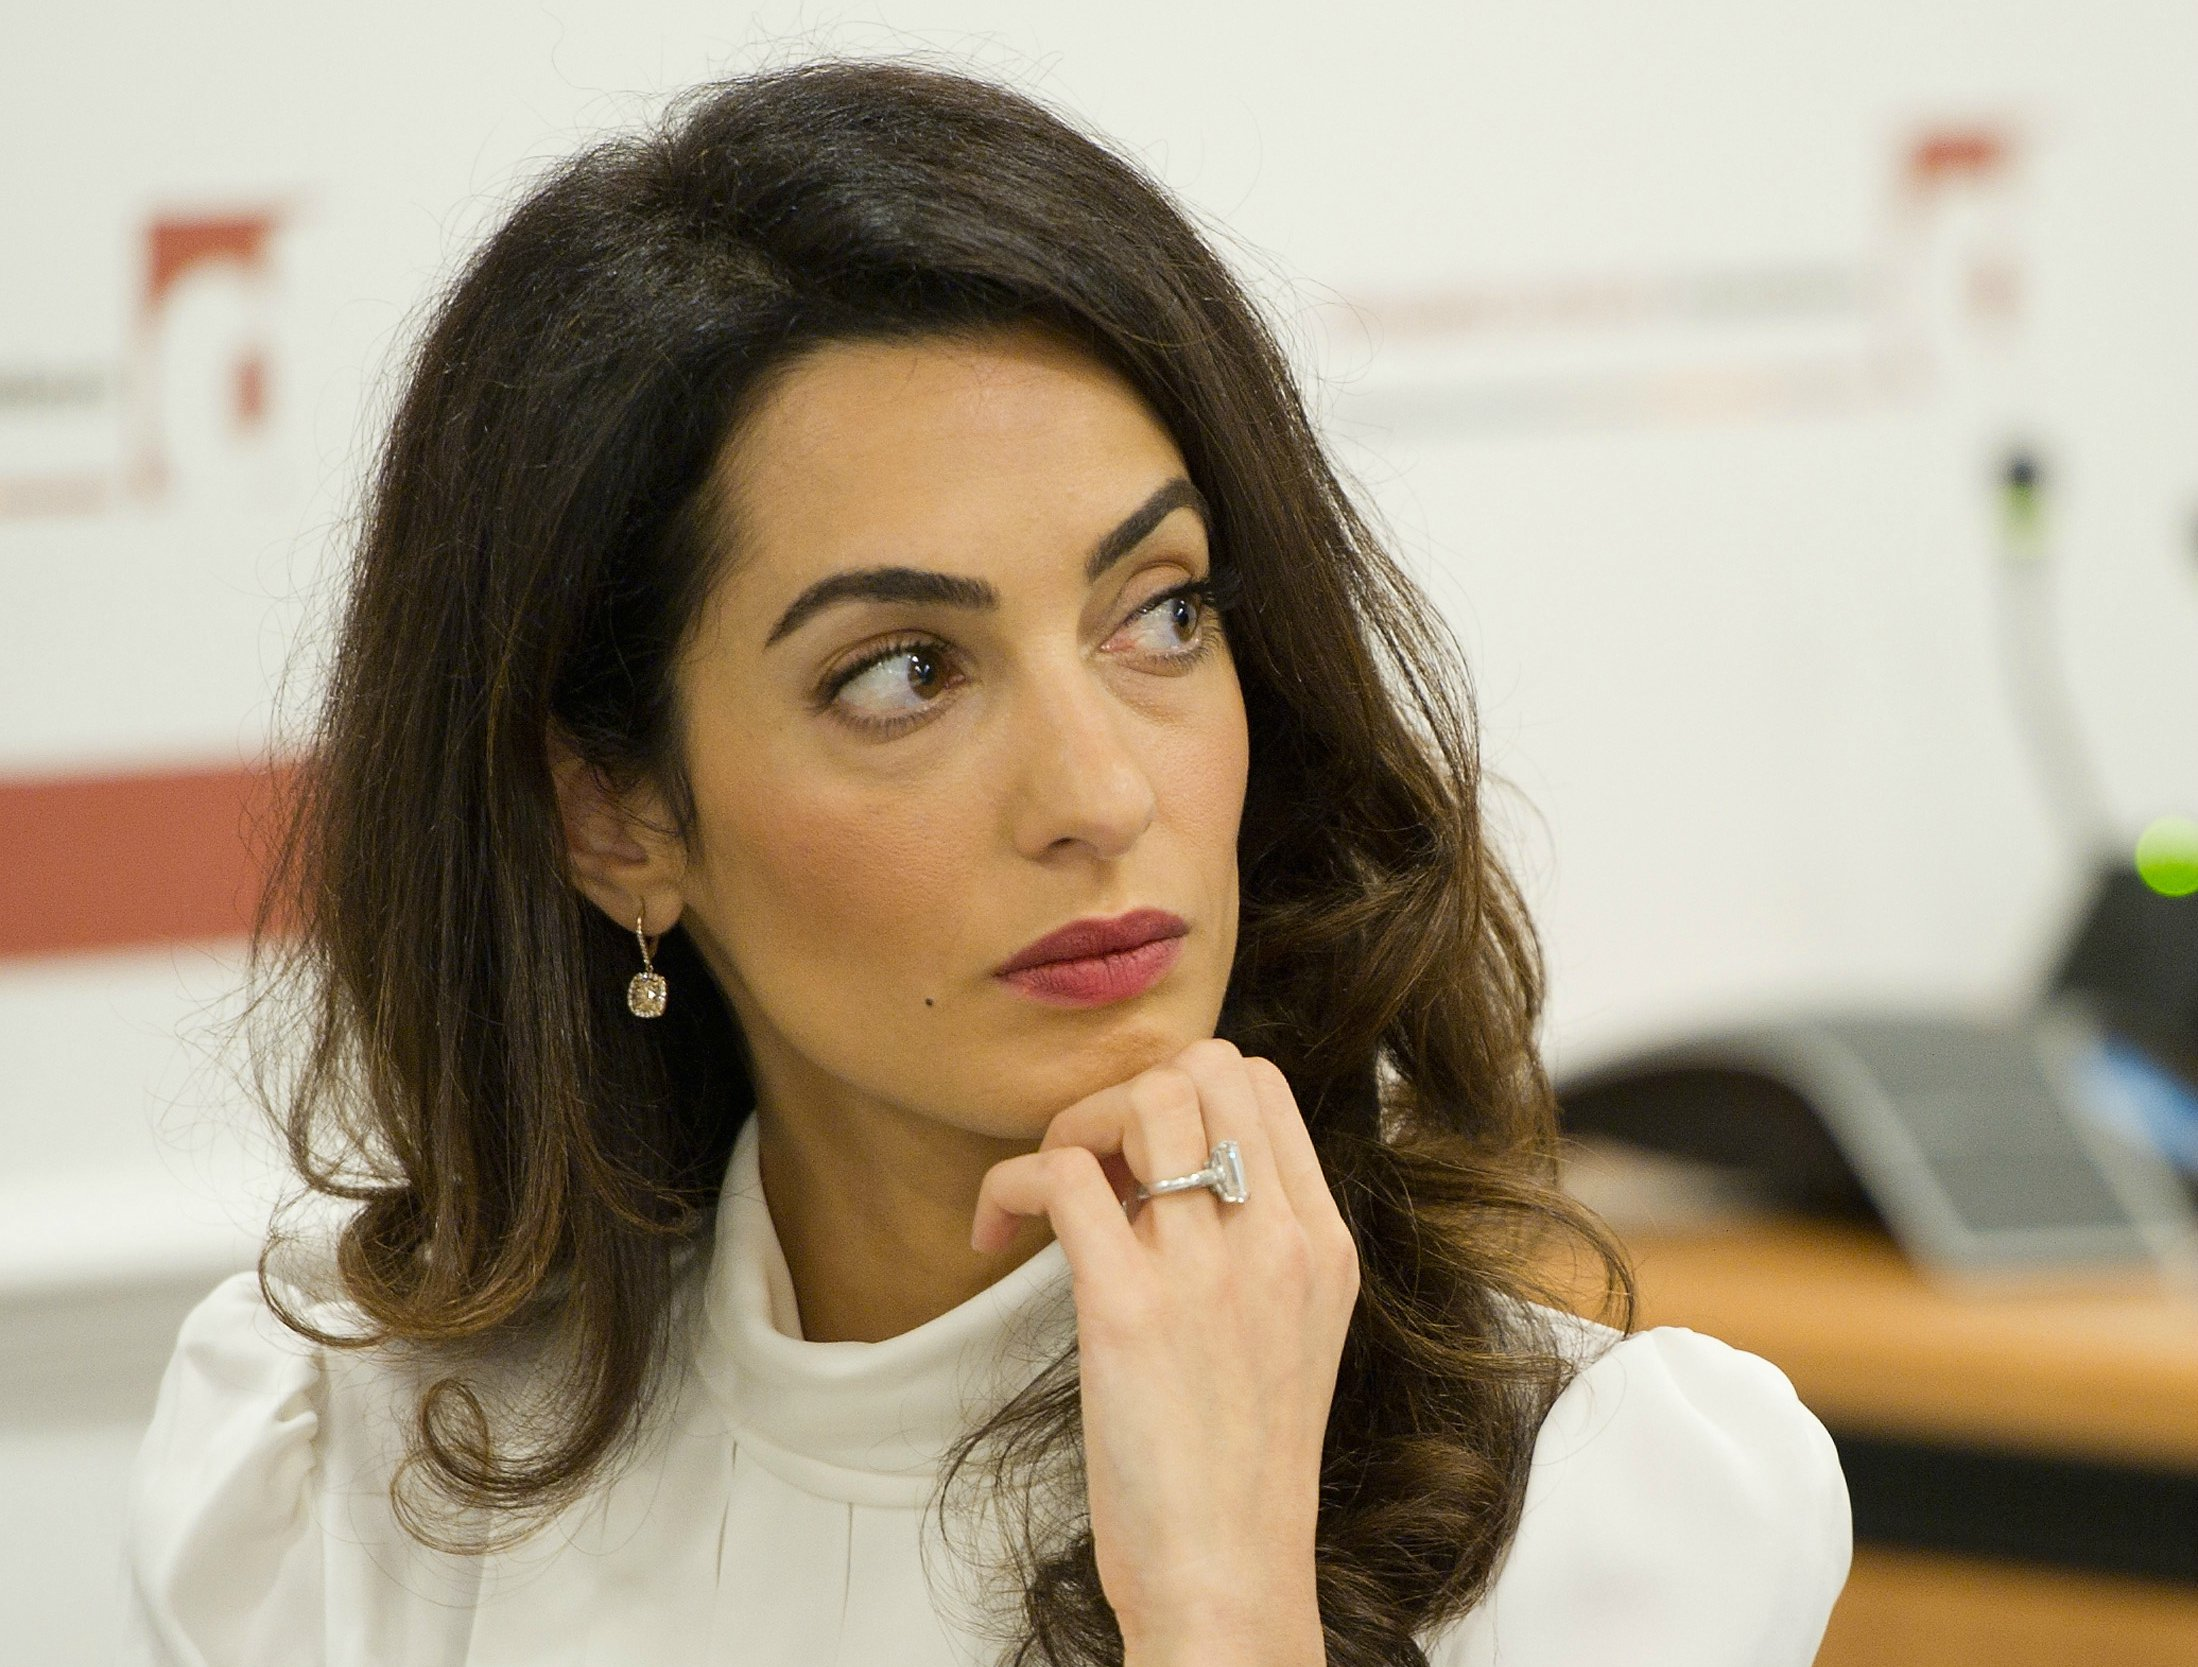 Hair Color Fix For Brunettes Inspired By Amal Clooney